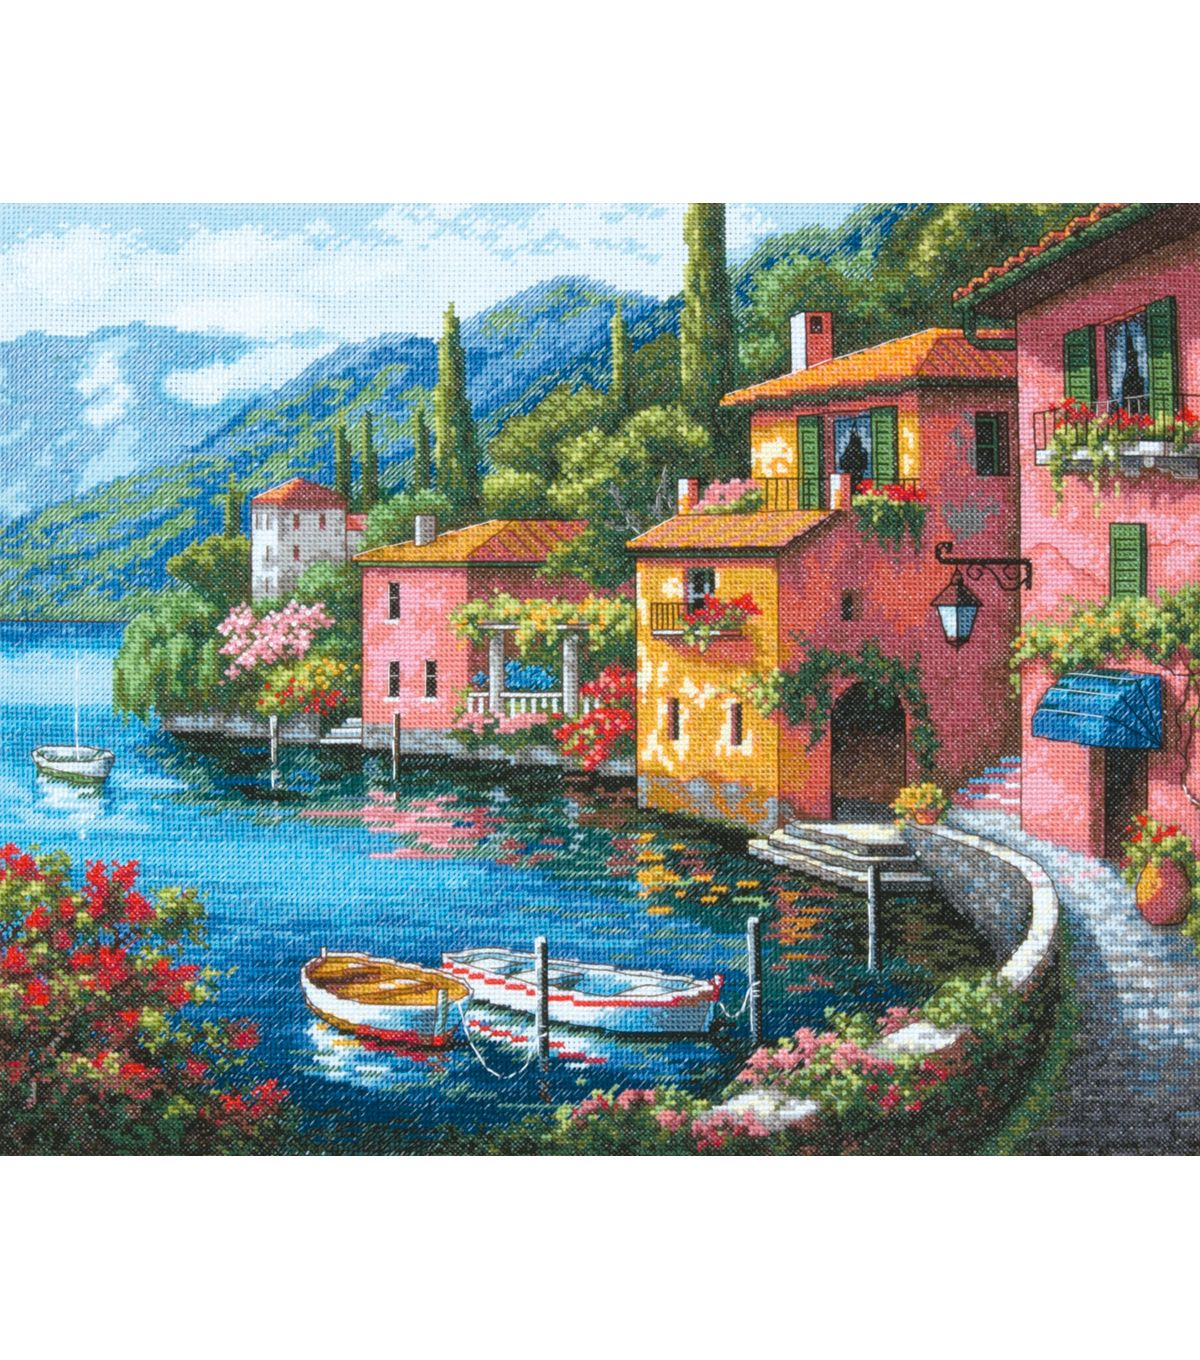 "Gold Collection Lakeside Village Counted Cross Stitch Kit-15""X12"" 16 Count at Joann.com  love, love the colors"